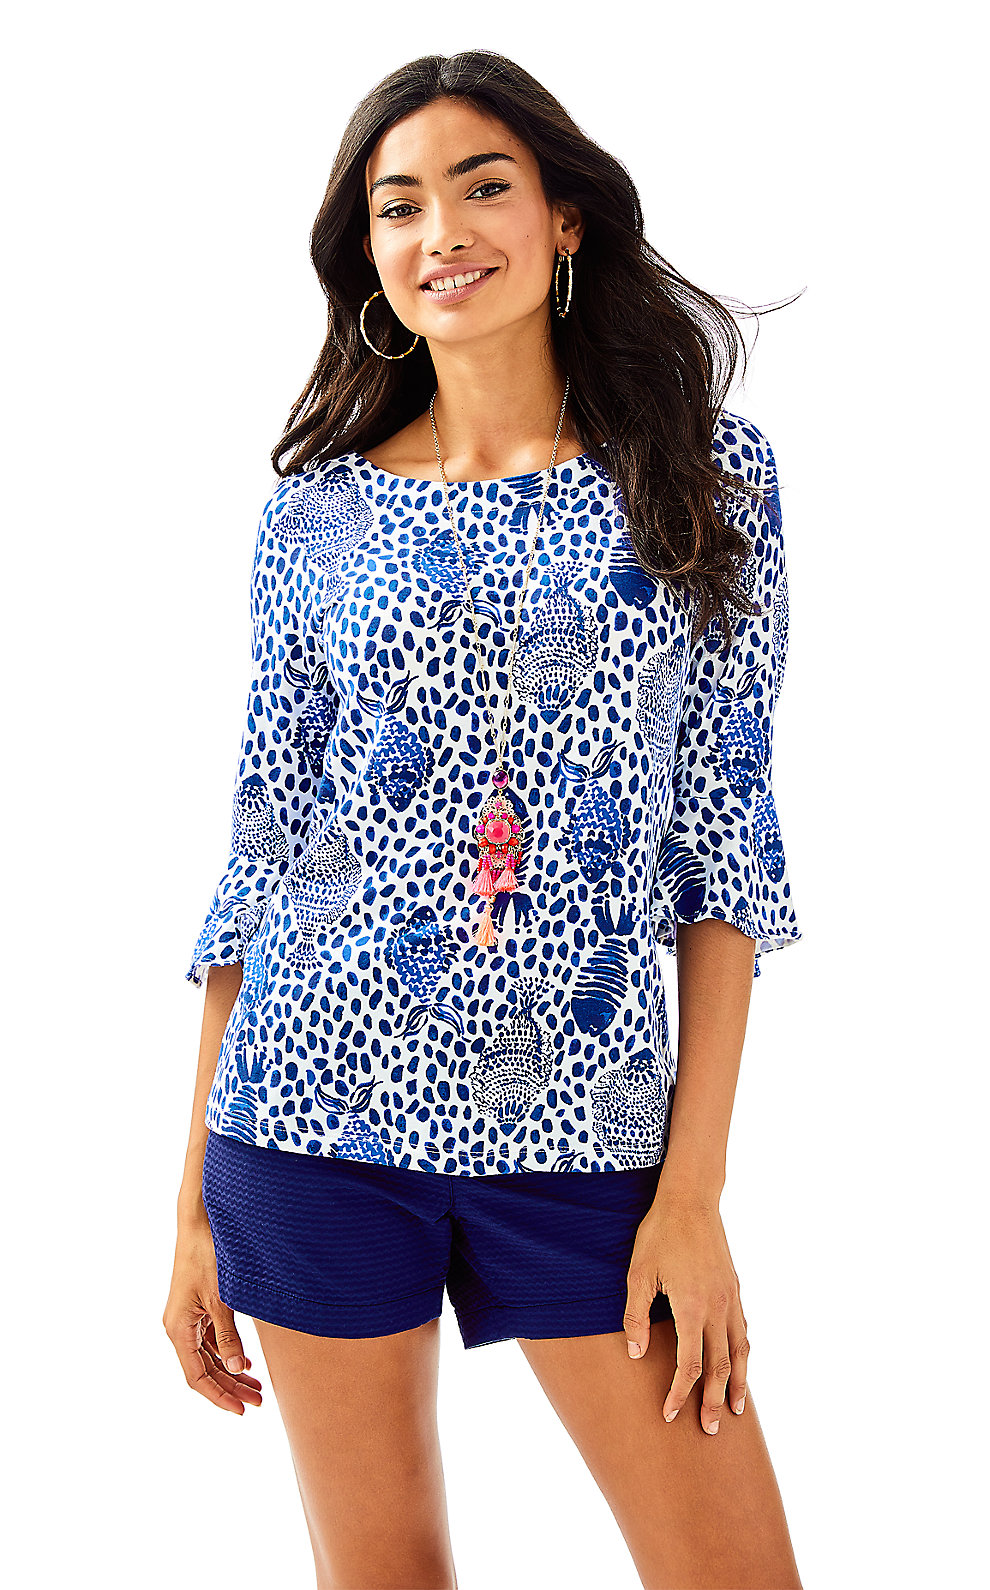 Lilly Pulitzer Lilly Pulitzer Fontaine Top